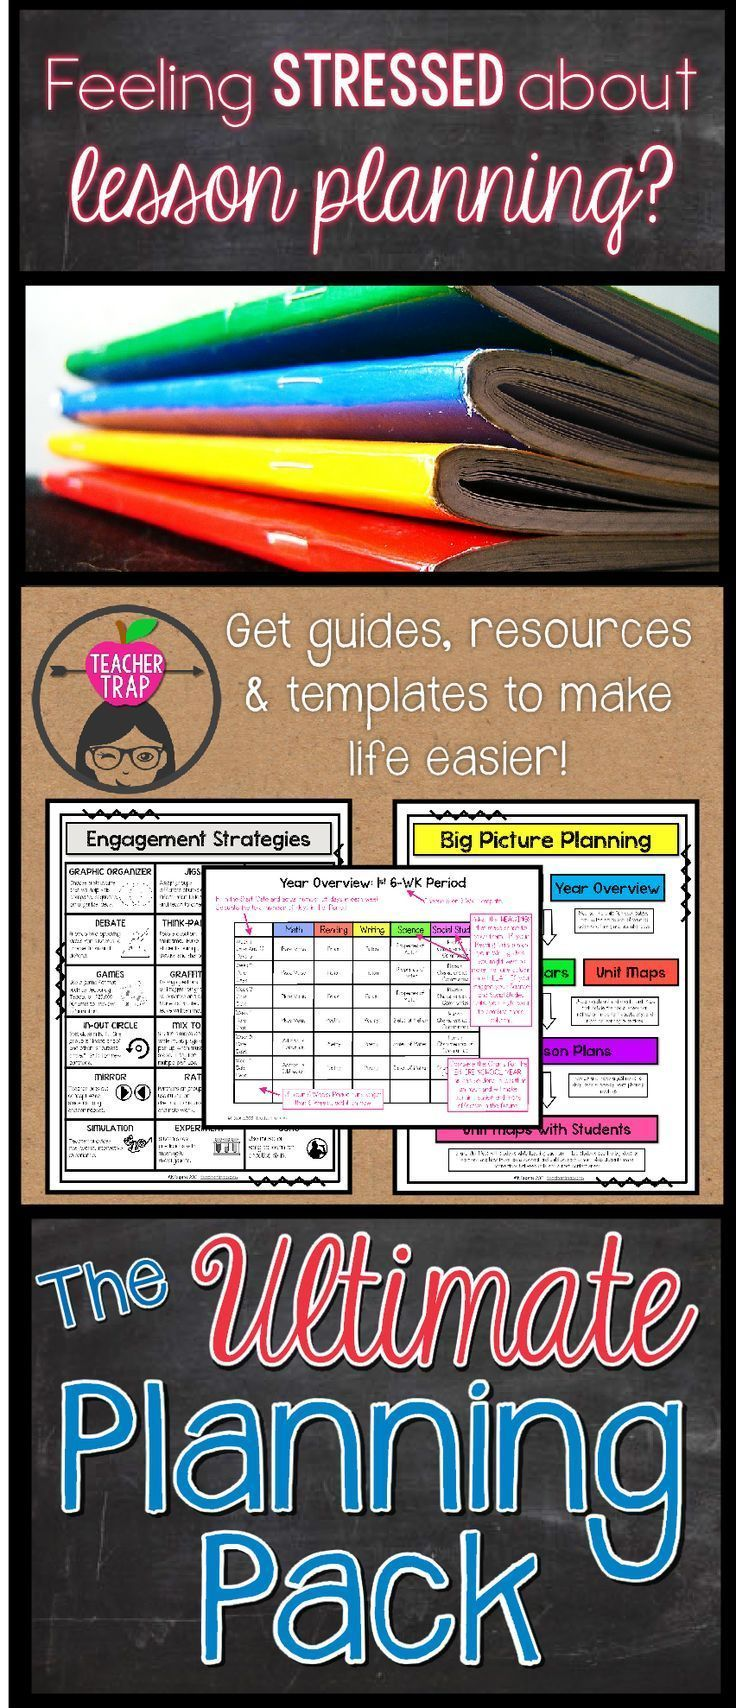 All the resources you need to rock lesson planning!  Editable templates, handy reference pages, planning guides and more!  Team planning just got a whole lot easier.